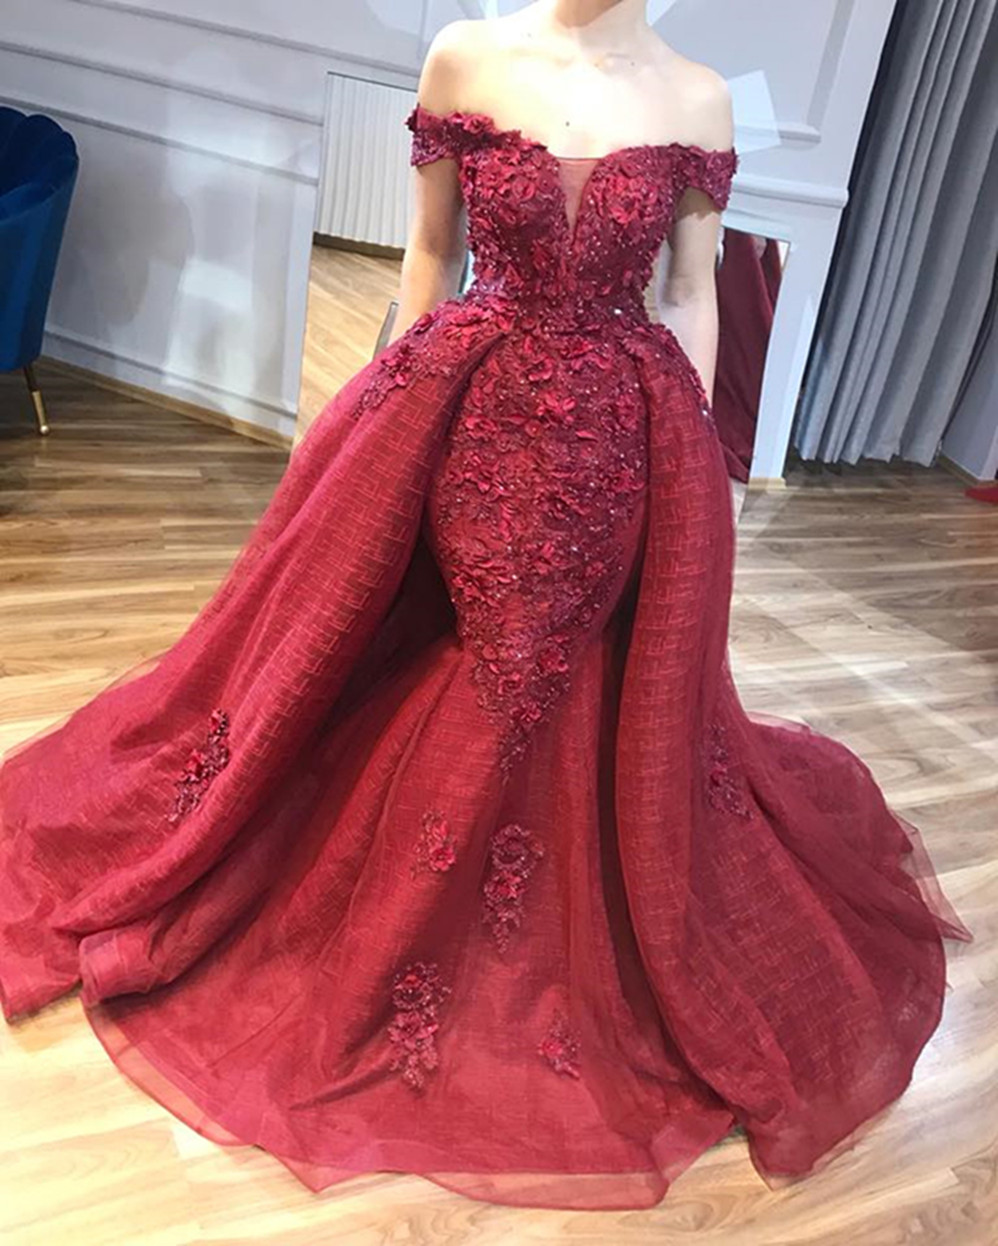 Abiye Dubai Red Lace Beaded Mermaid Evening Dresses 2020 With Detachable Train 3D Flower Prom Gowns Off Shoulder Abendkleider